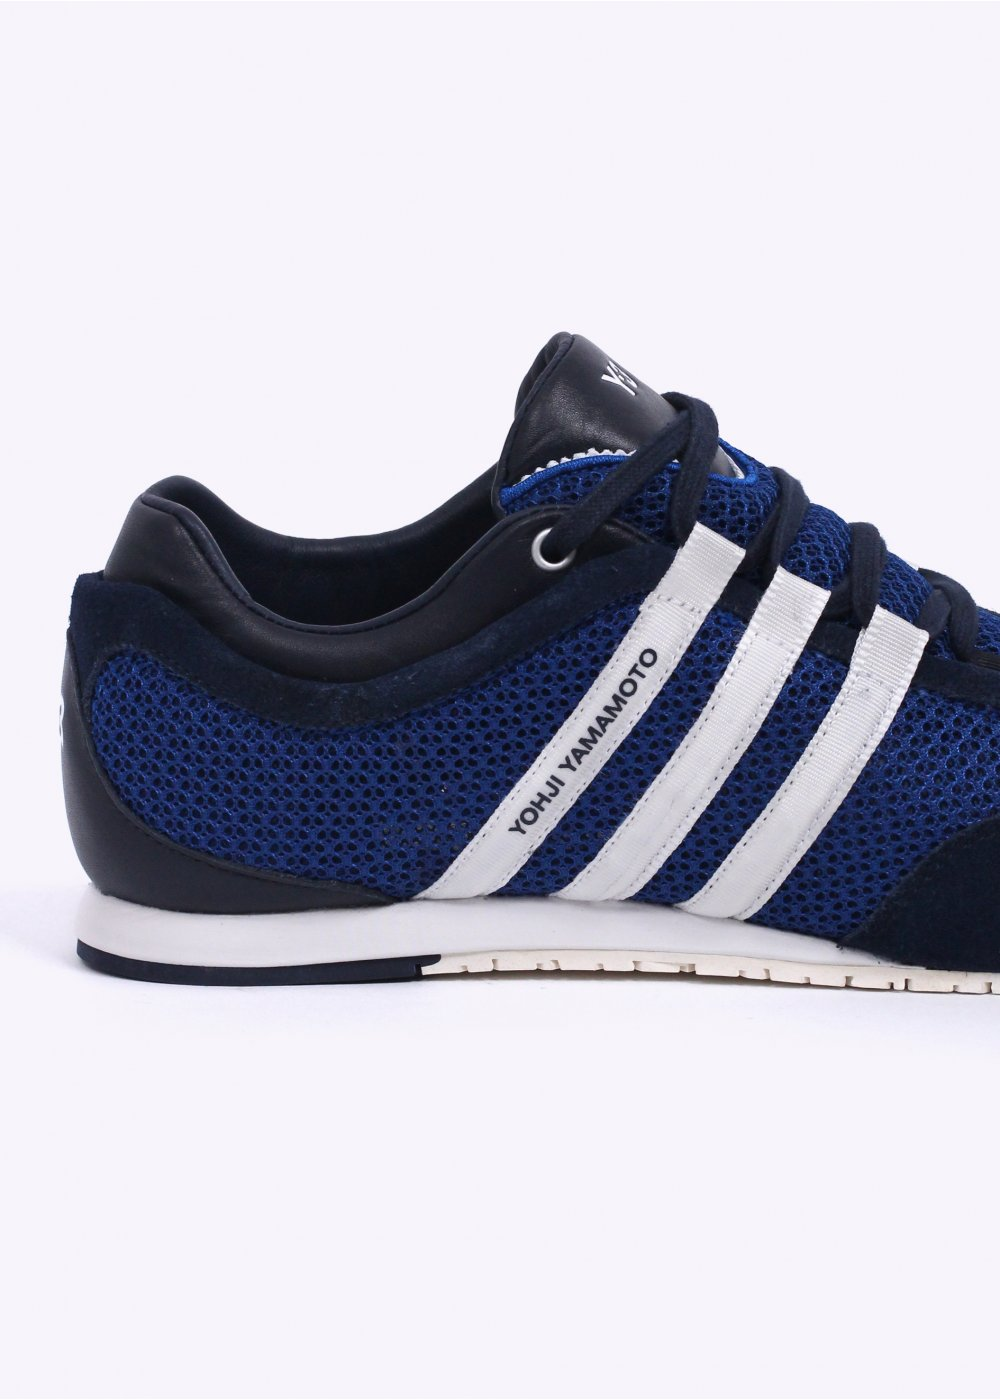 adidas y3 boxing trainers sale